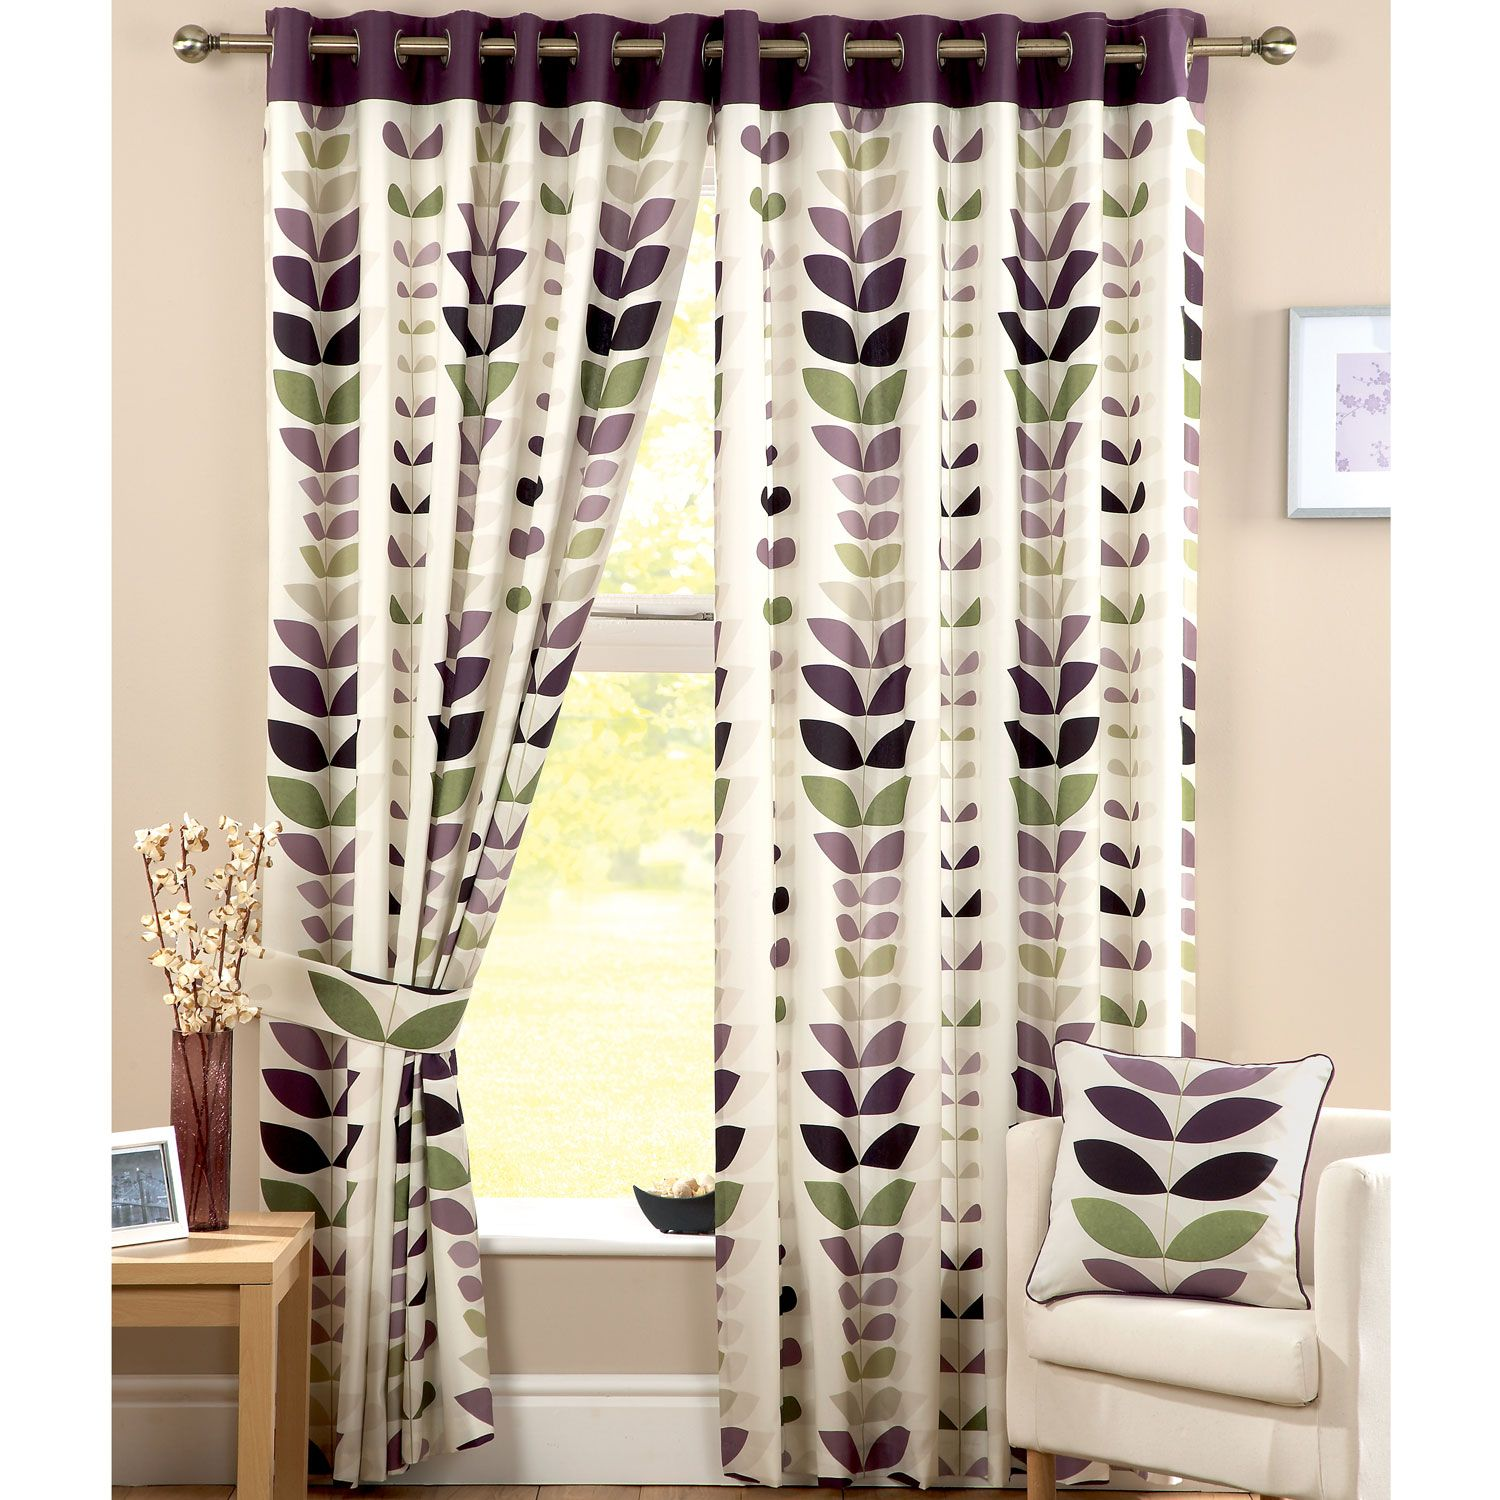 Zest Modern Retro Solid Printed Leaf Pattern Readymade Lined Pencil Pleat  Curtains, Cream / Aubergine   X